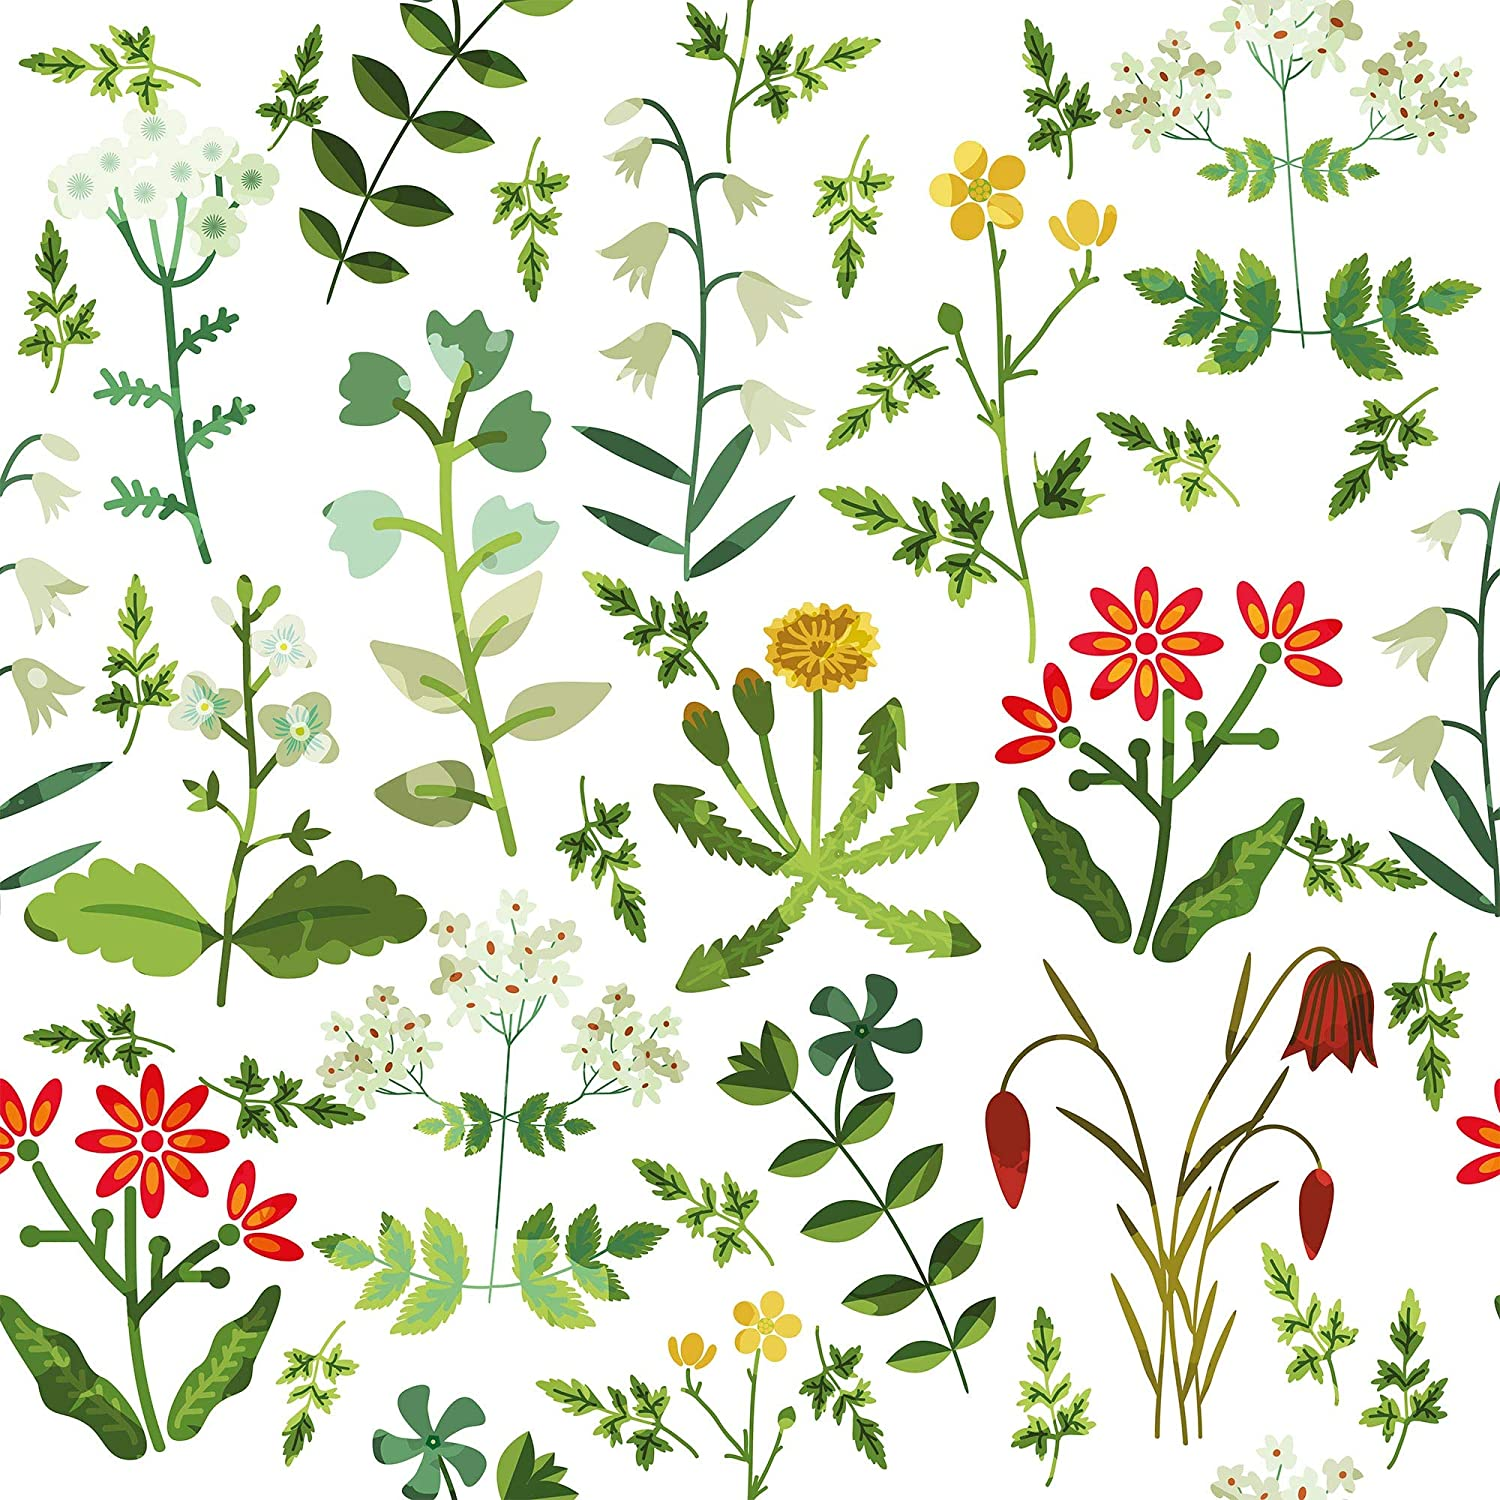 Wallsbyme Peel And Stick White Botanical Floral Fabric Removable